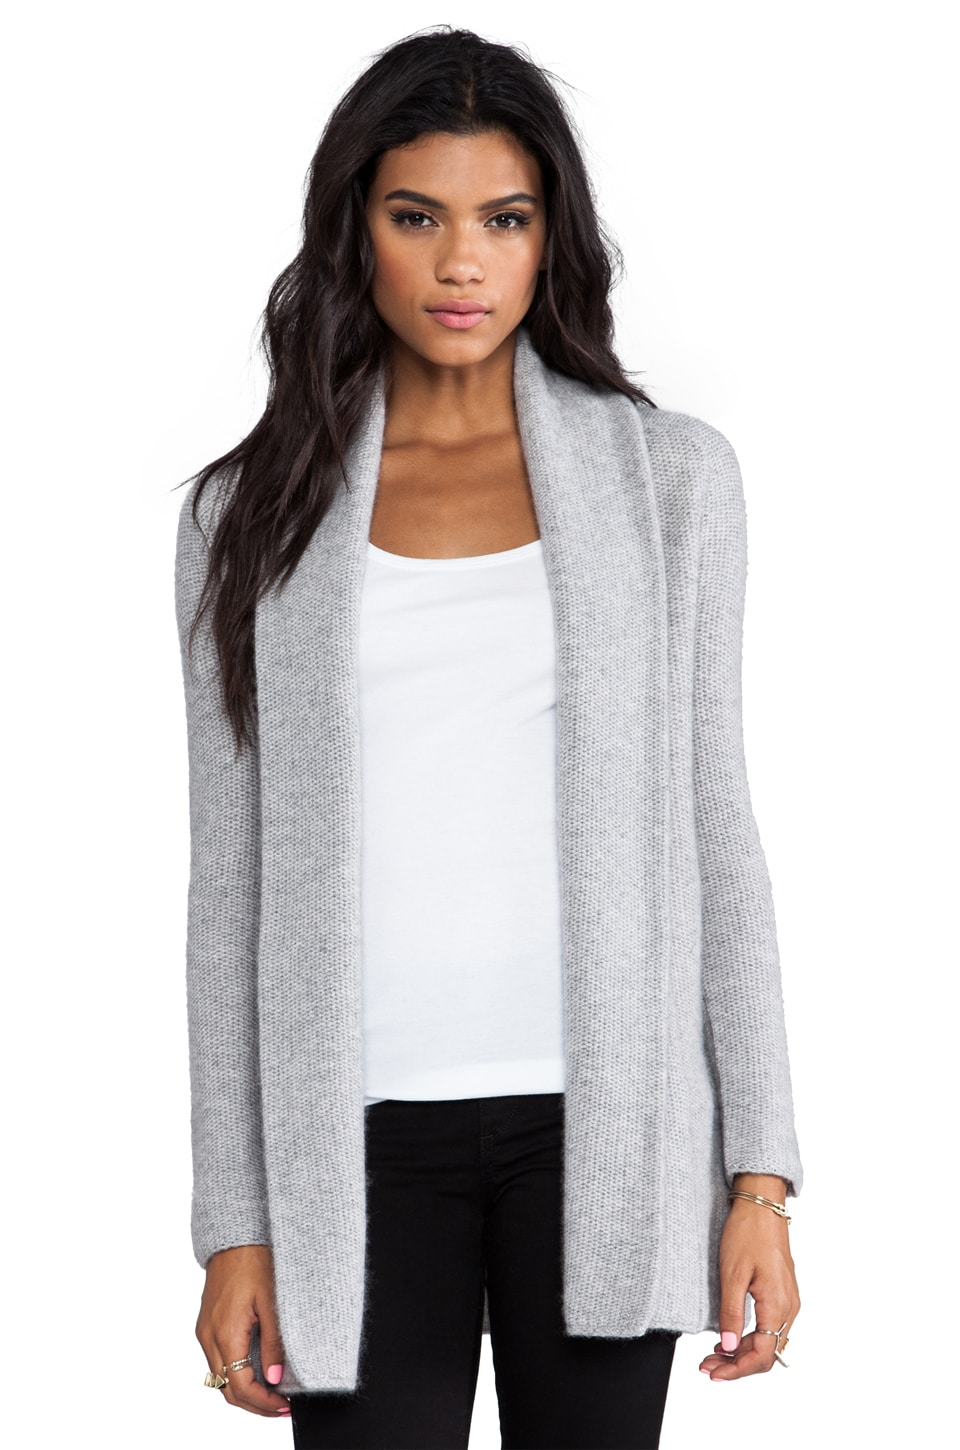 360 Sweater Aries Wool Cashmere Cardigan in Heather Grey